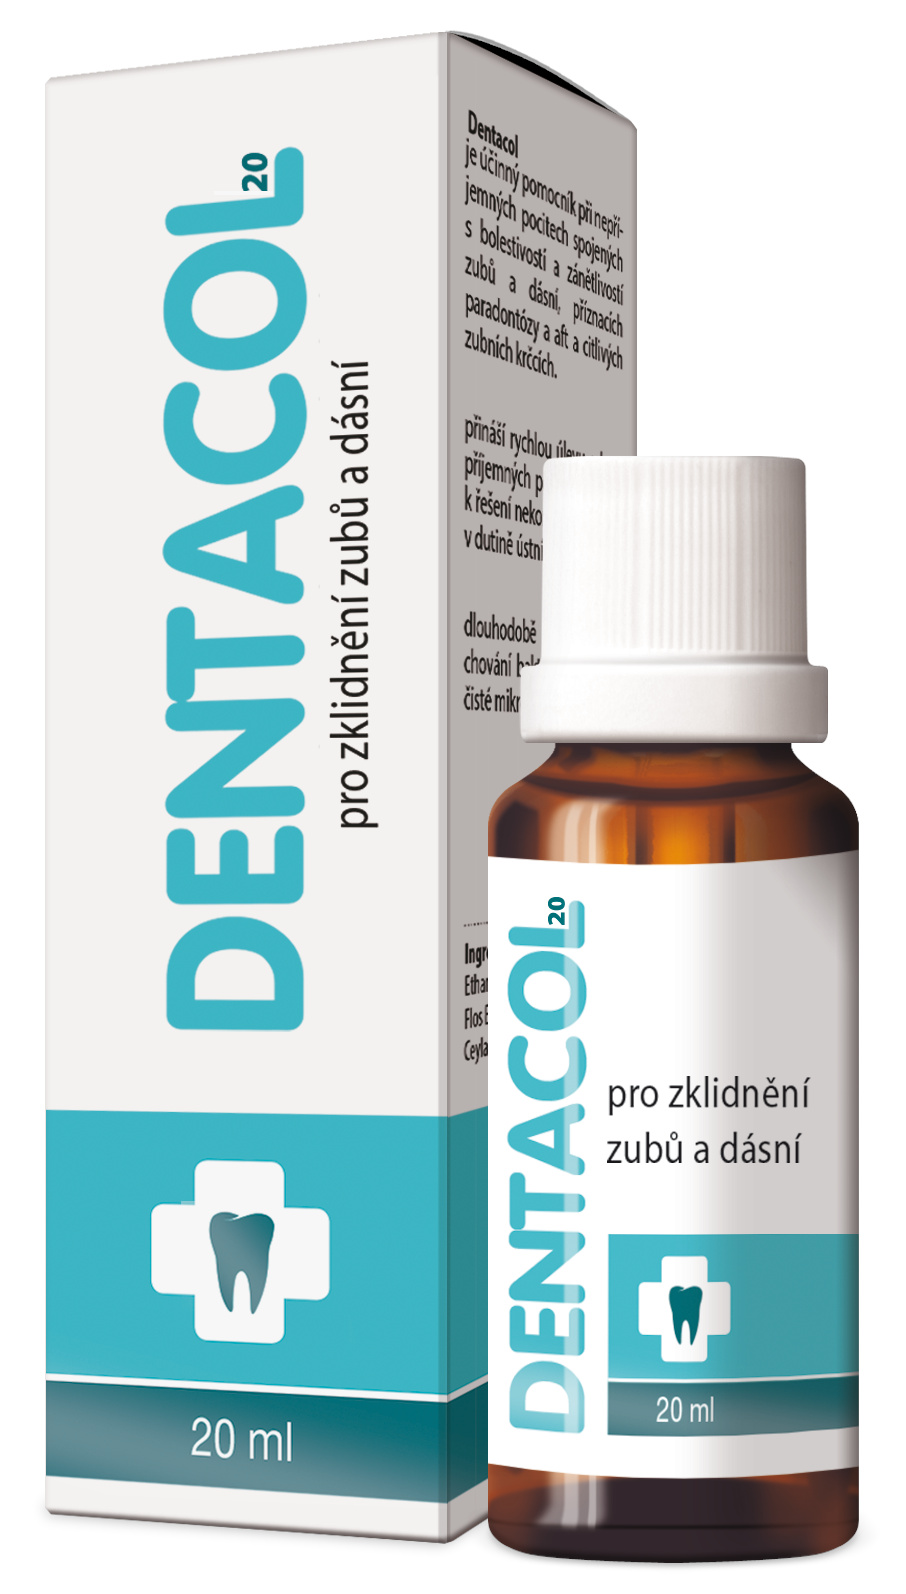 Dentacol 20ml